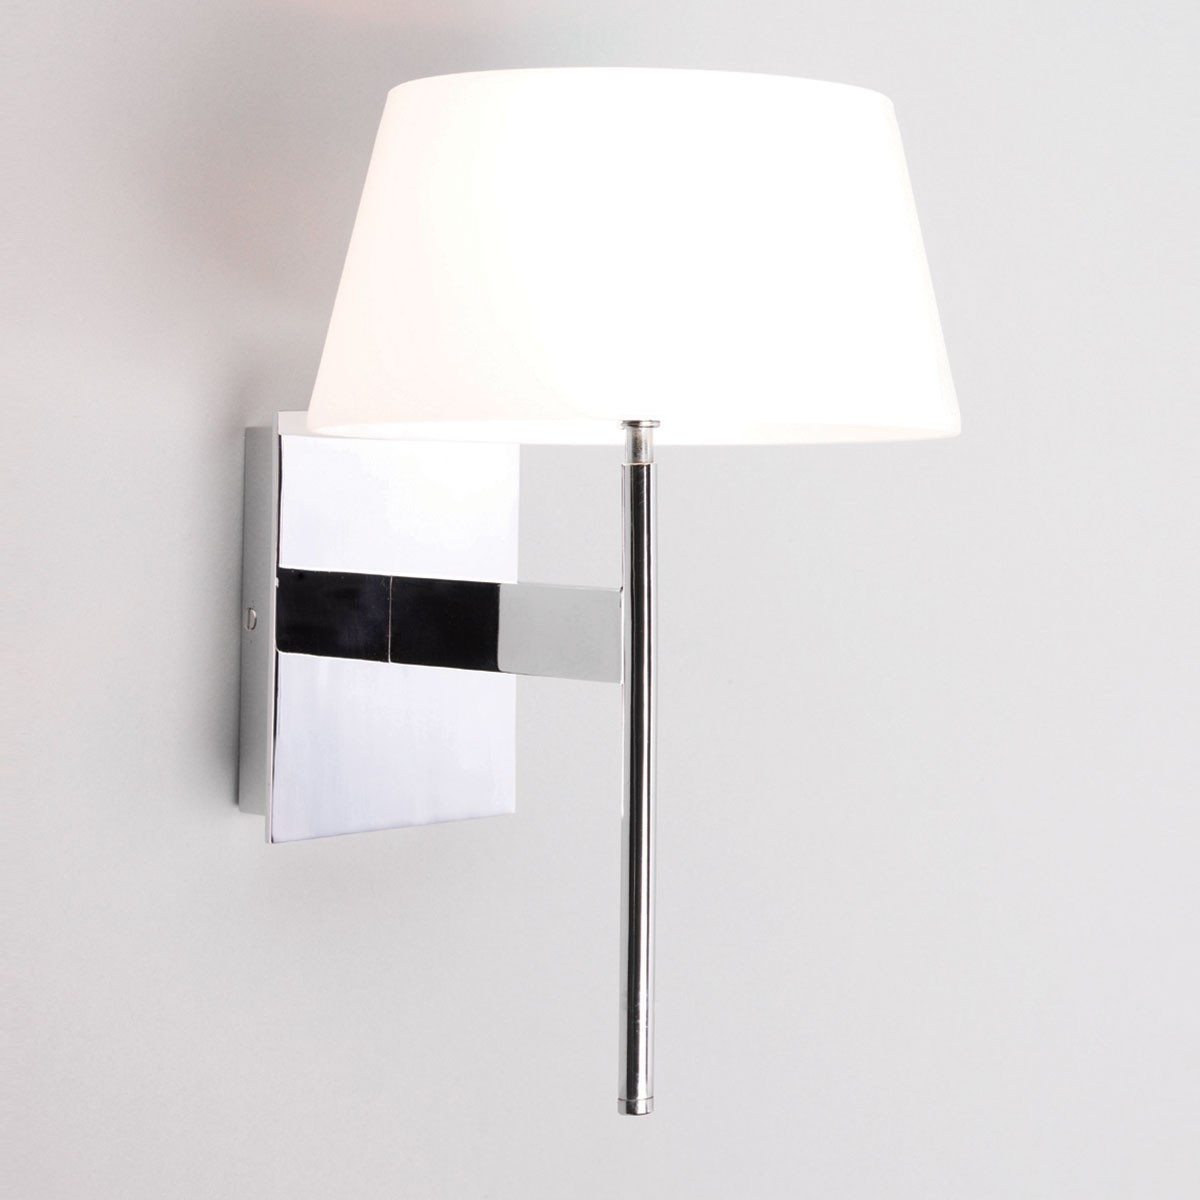 Astro Carolina Polished Chrome Wall Light with White Glass Shade at UK Electrical Supplies.